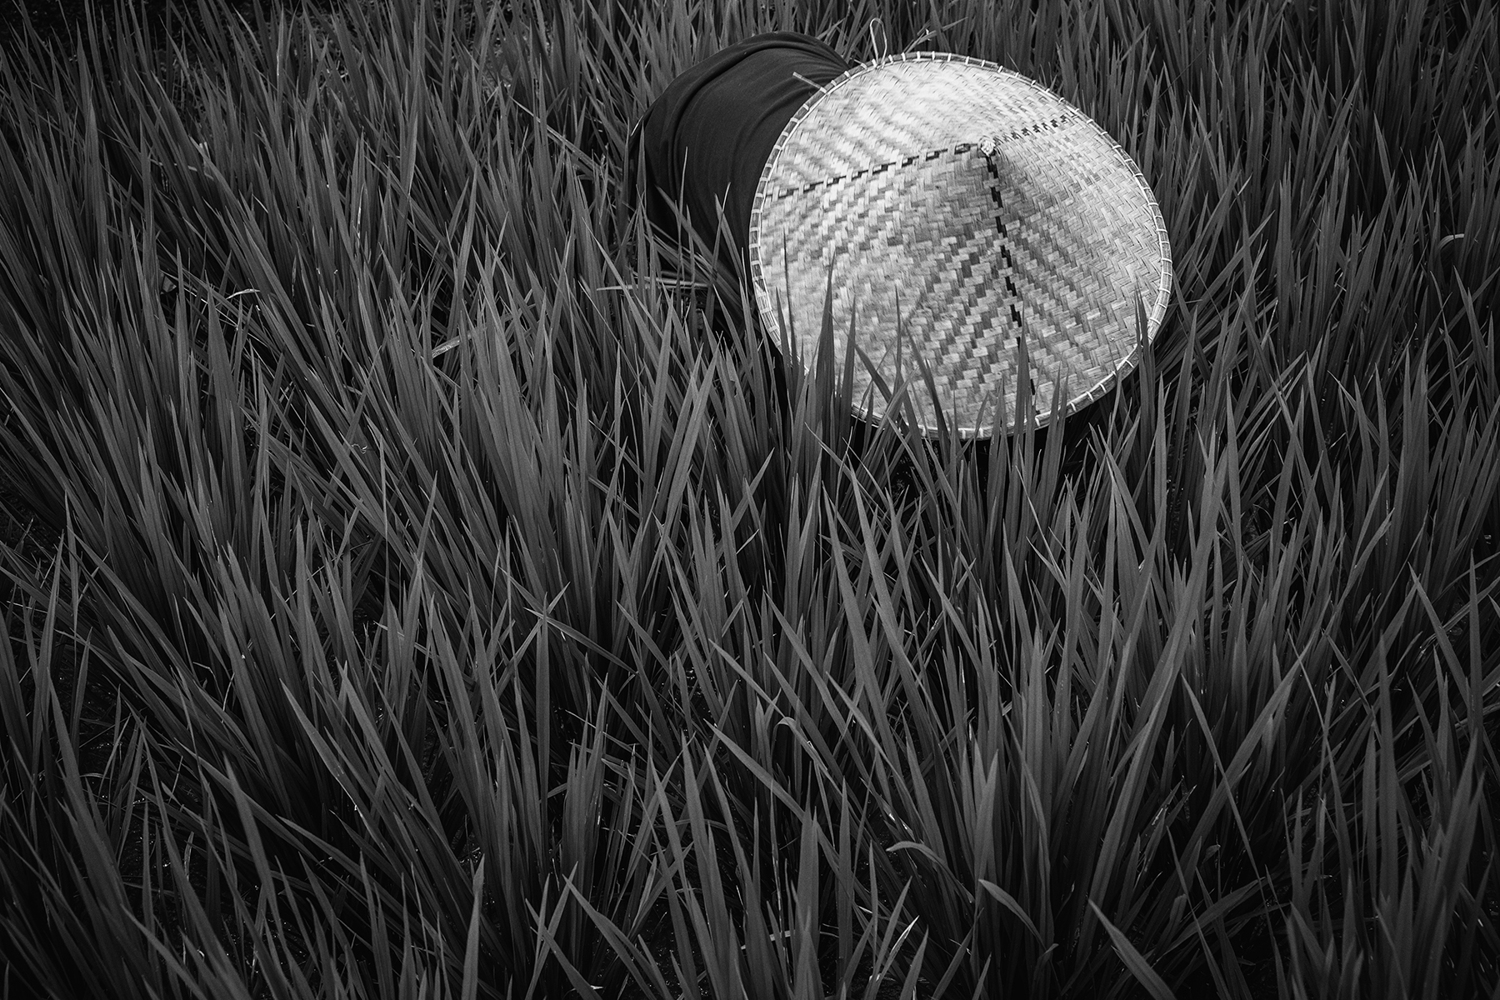 Fotomurale Rice Fields In Bw